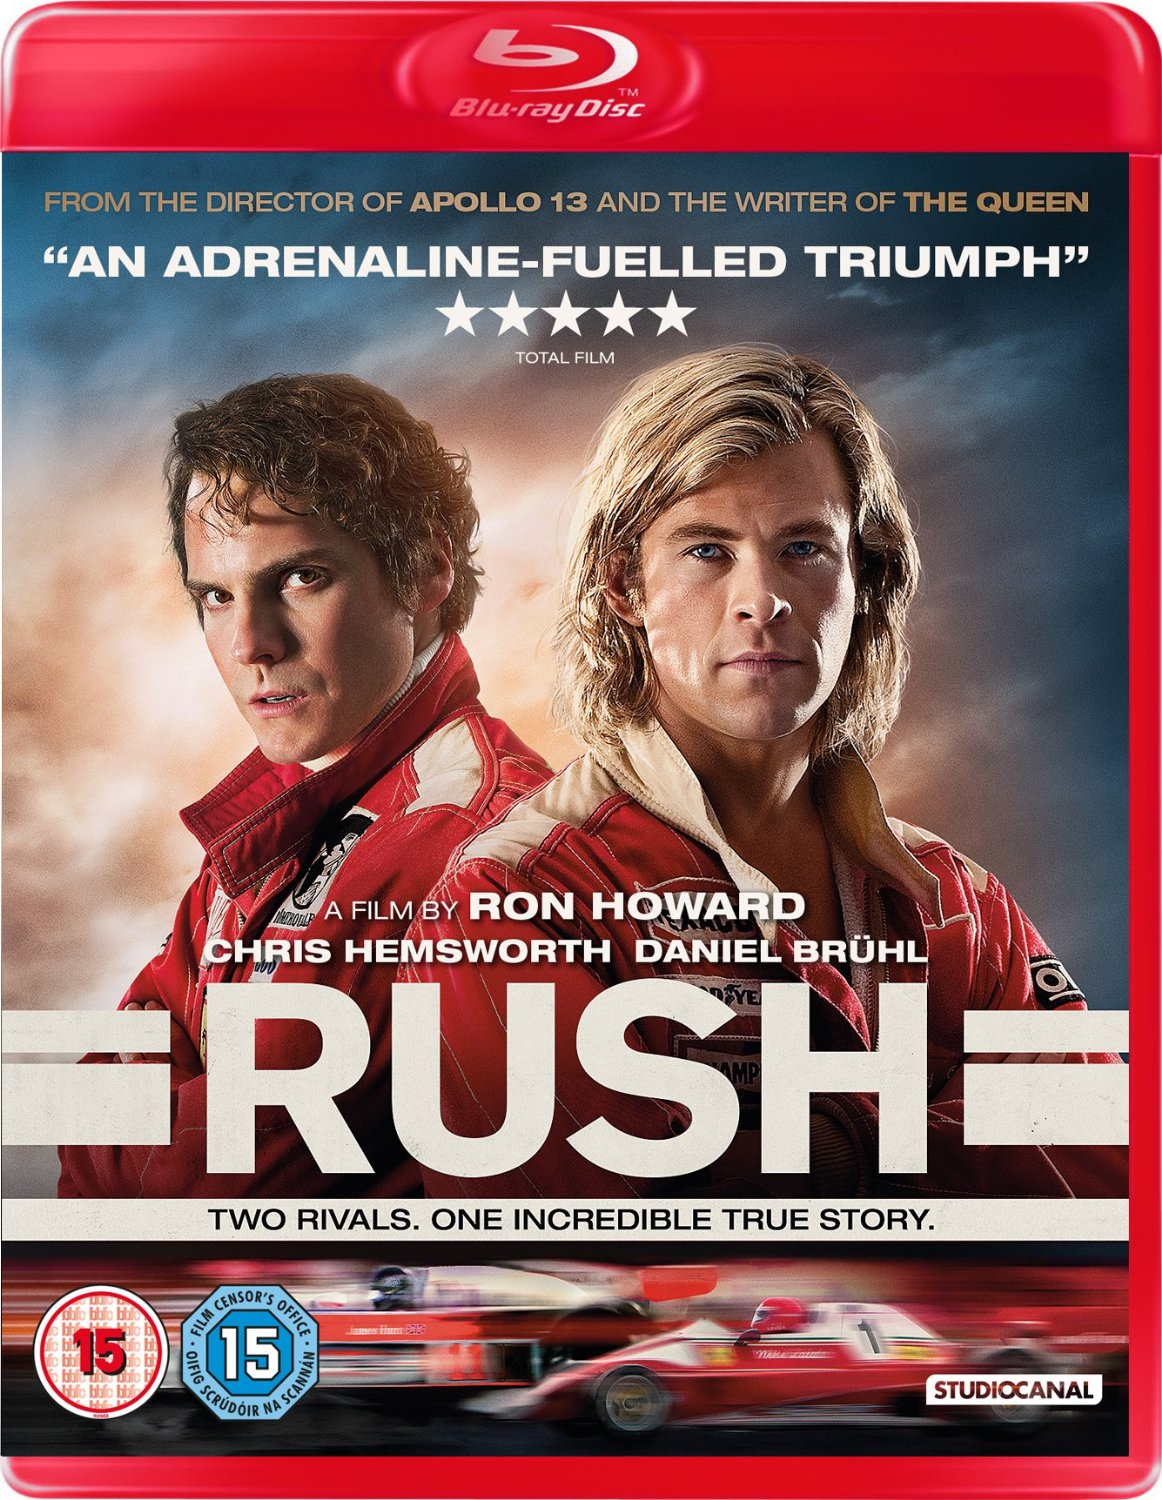 boom competitions - win a copy of Rush on Blu-ray